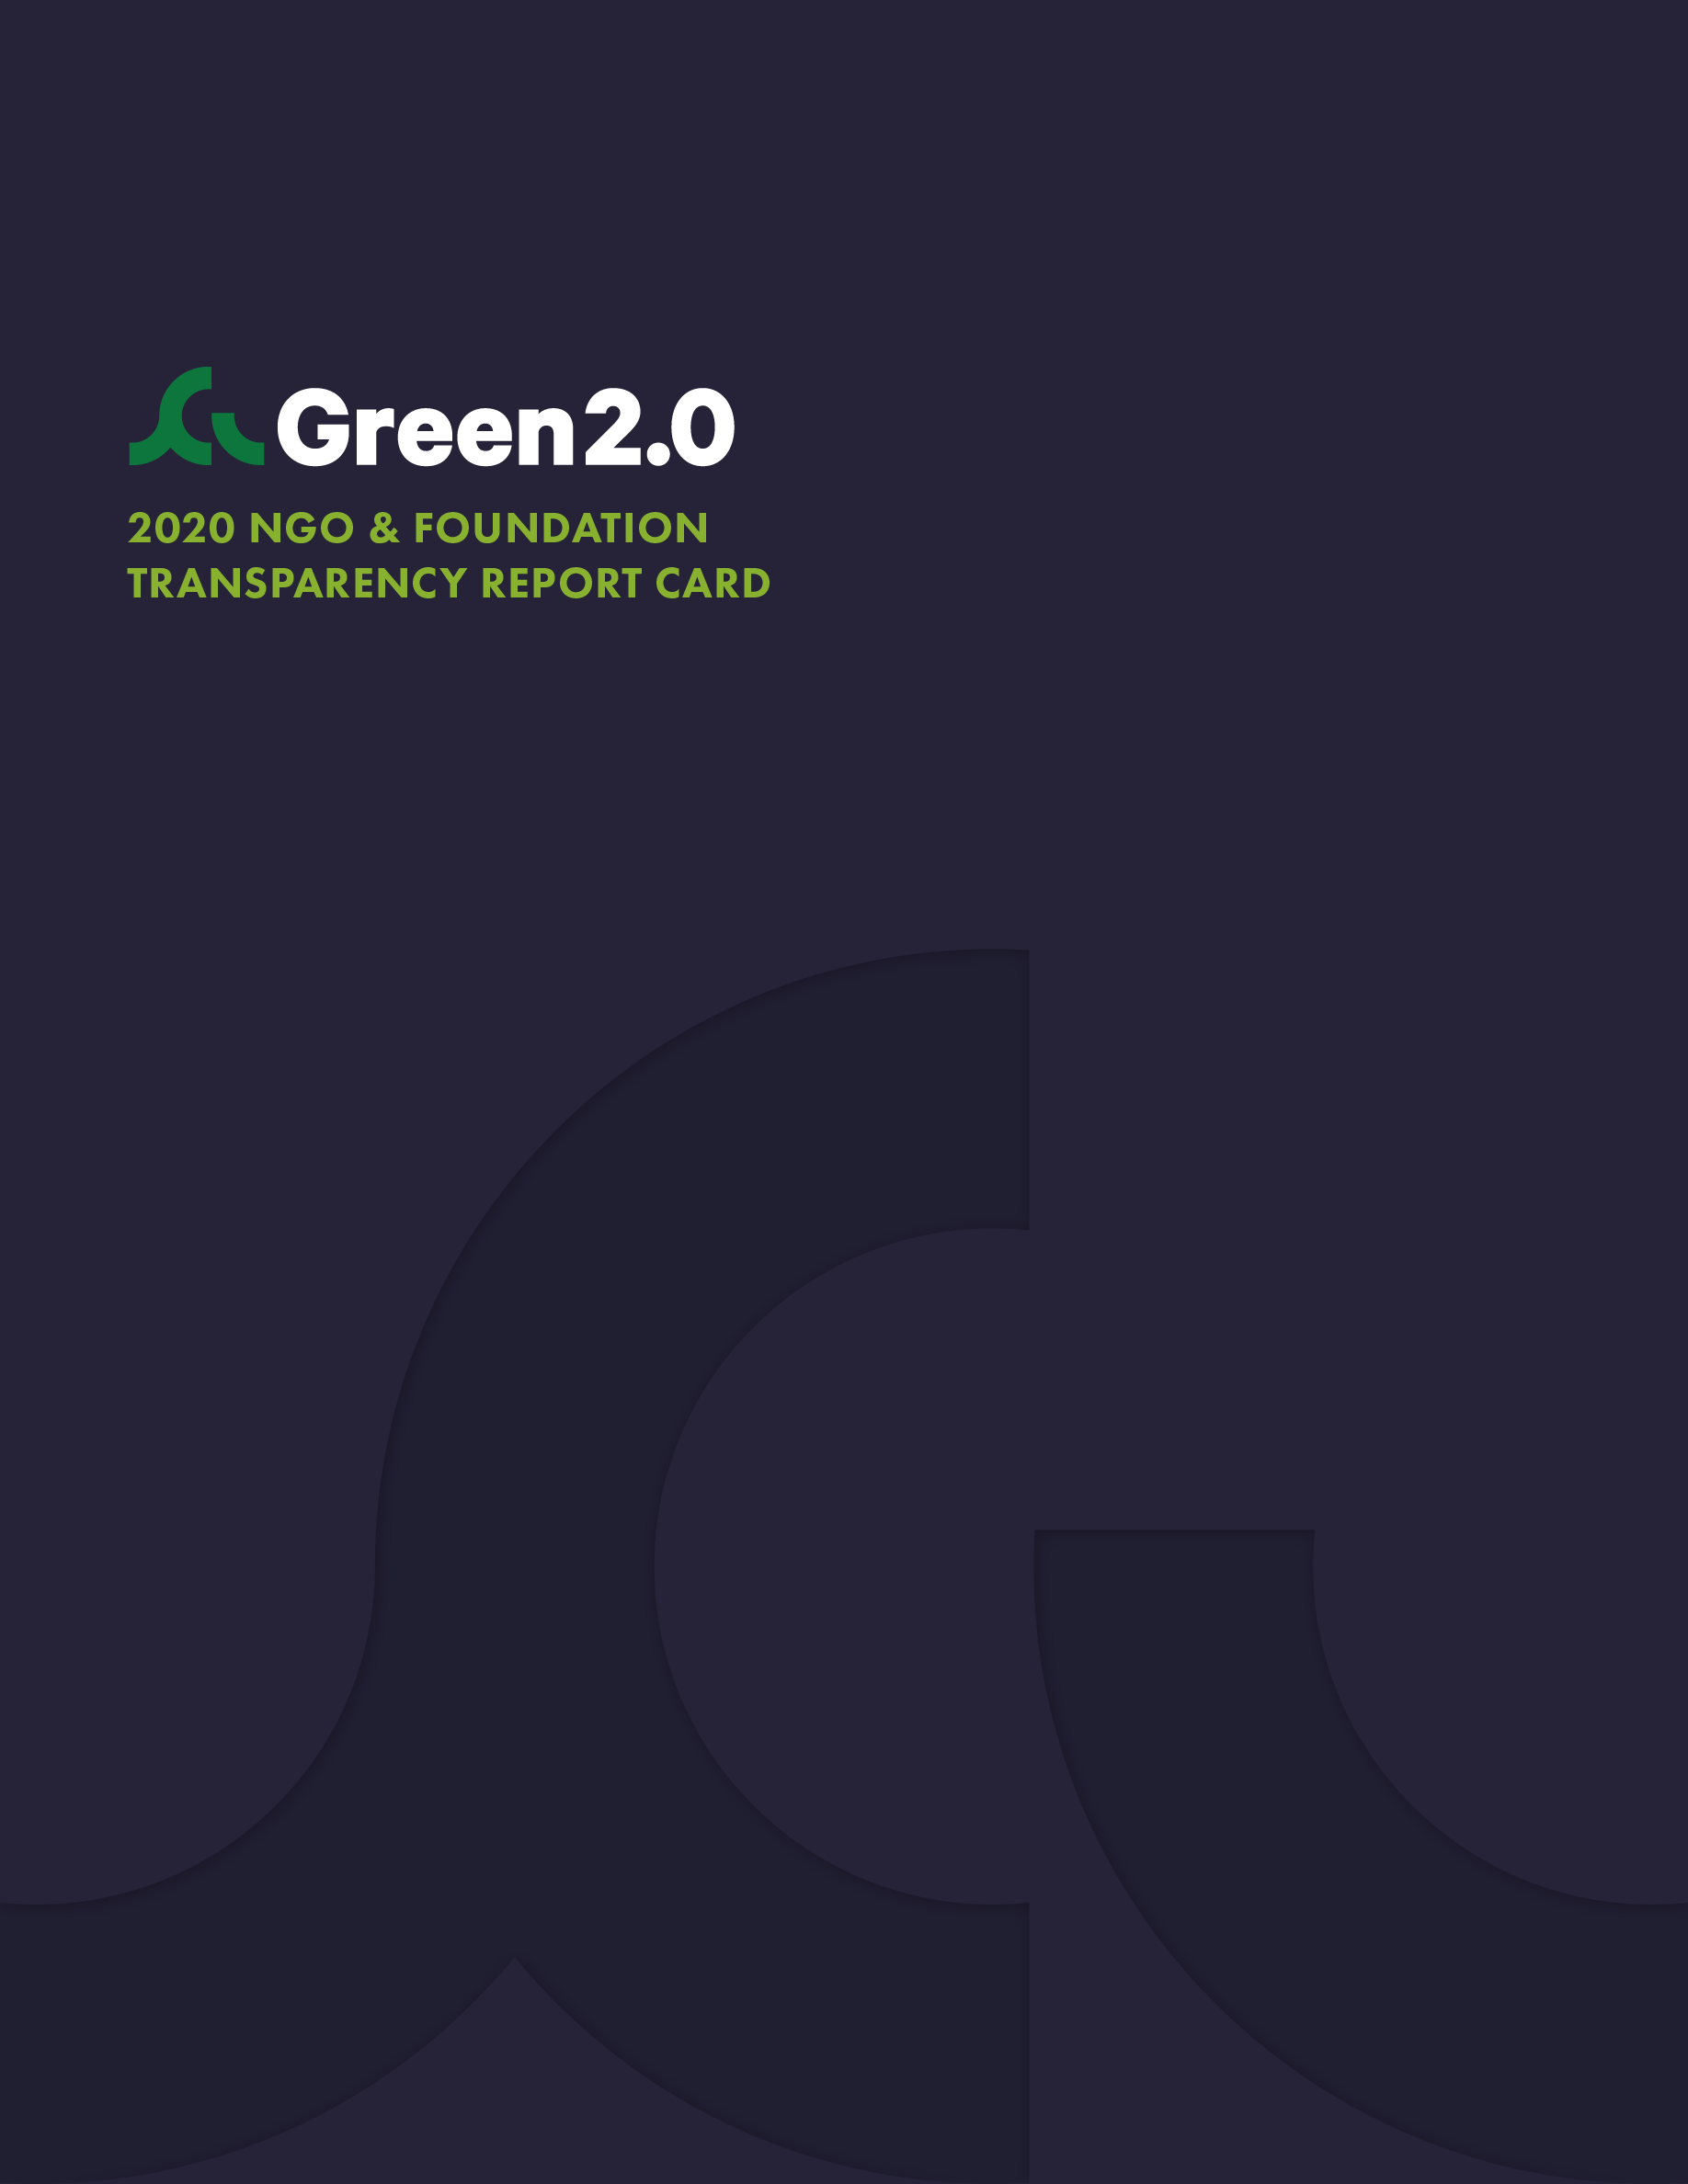 cover-green-2.0-2020-transparency-report-card